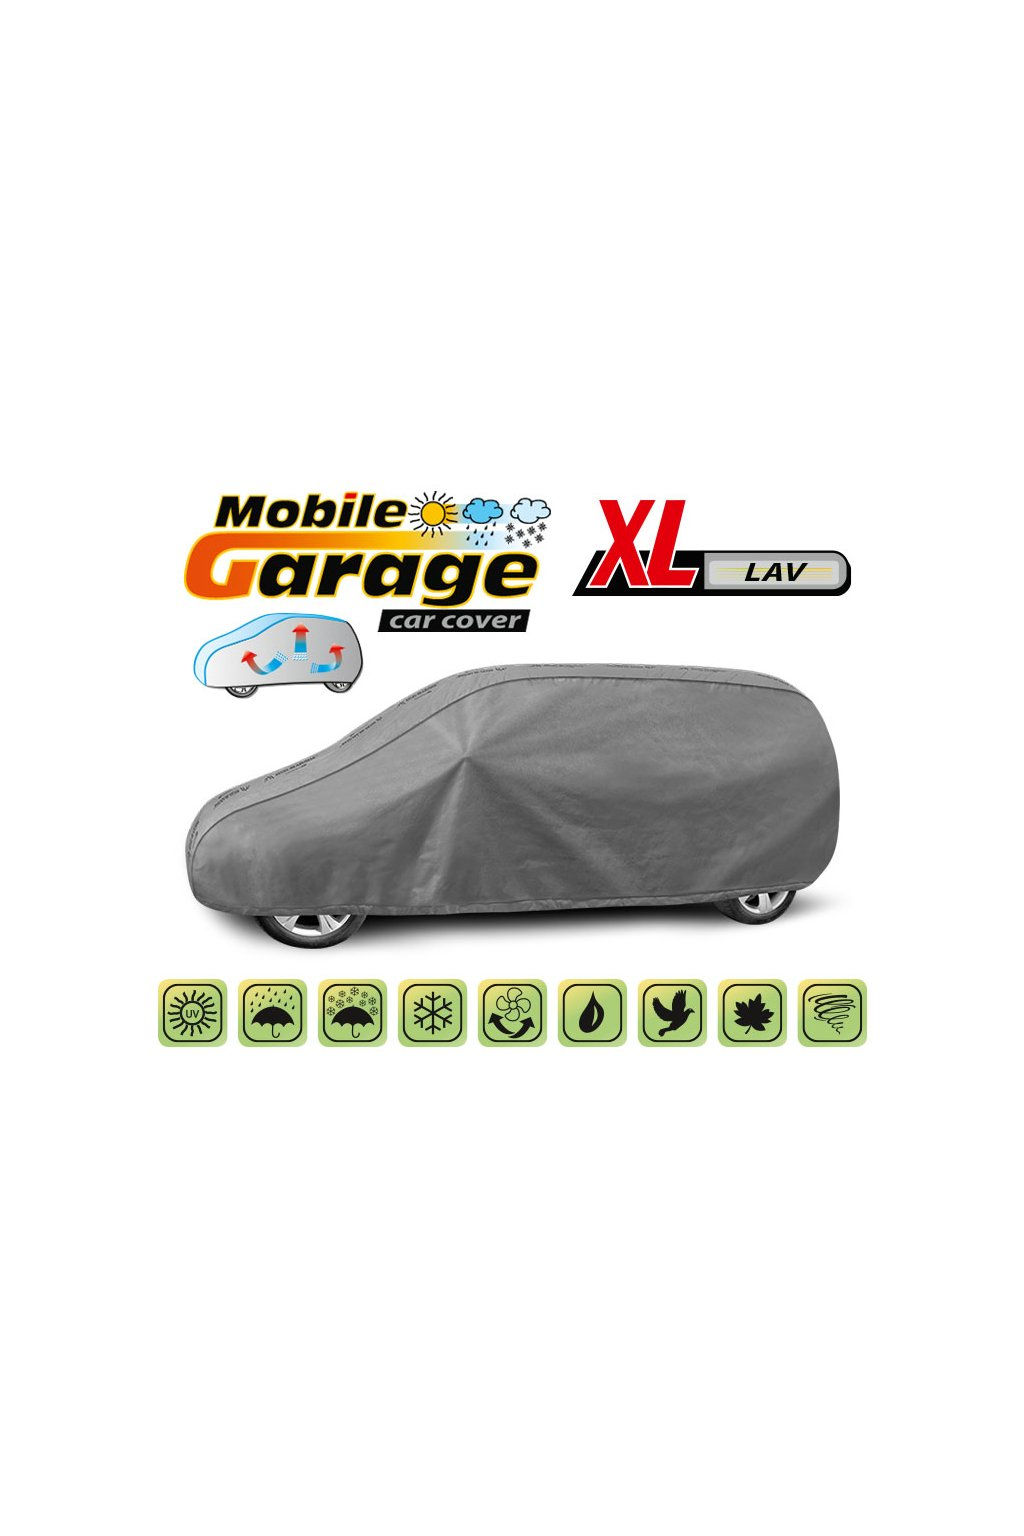 mobile garage XL lav 3 art 5 4137 248 3020